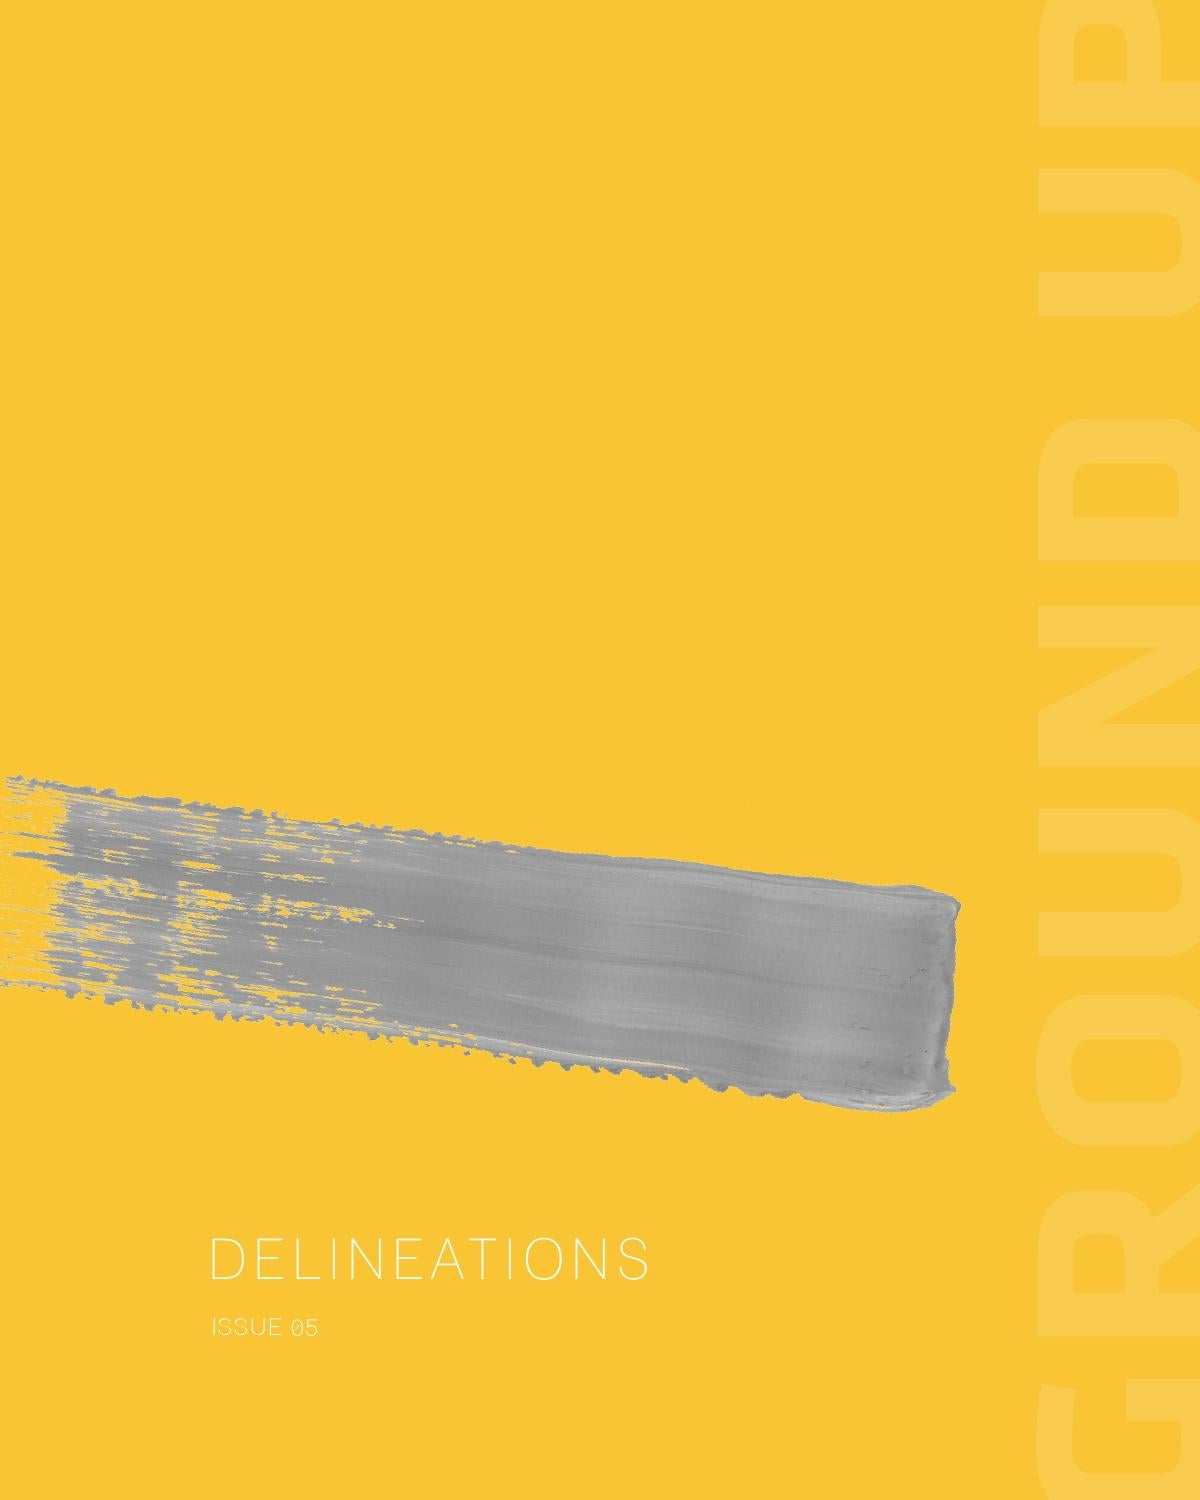 Issue 05 Delineations By Ground Up Journal Issuu Usb Campod Breakout Board For Cnc Machine Control